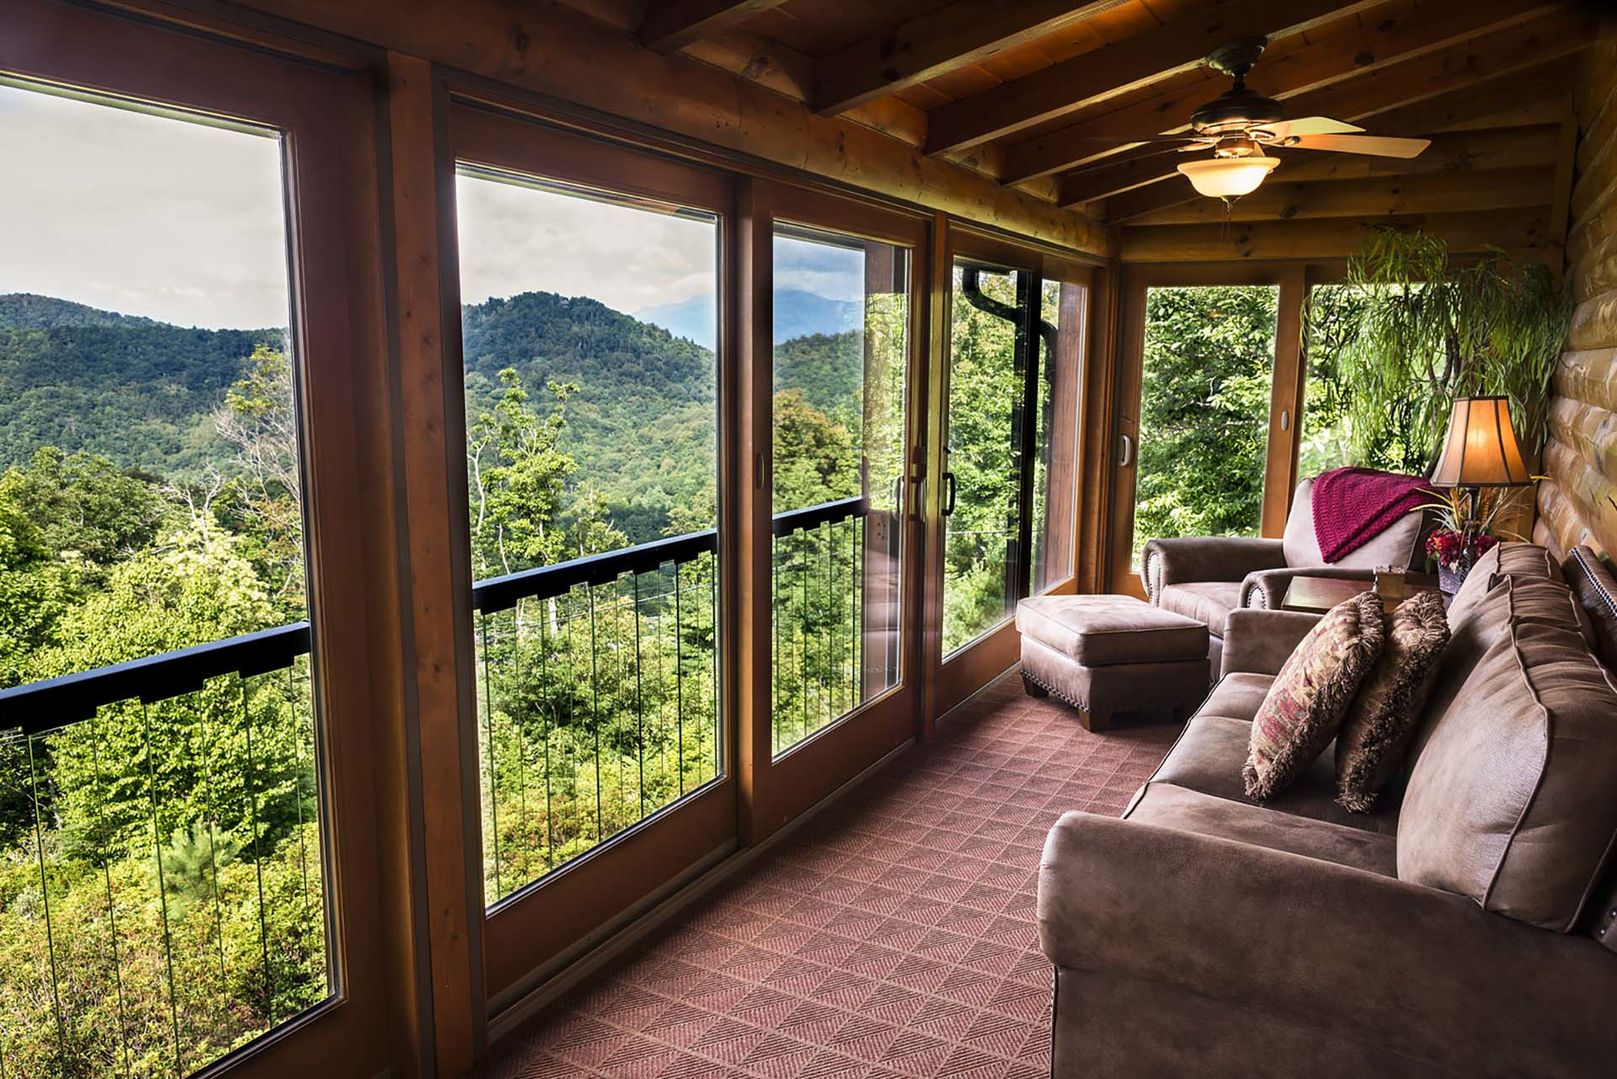 Covered, screened in porch with furnishings